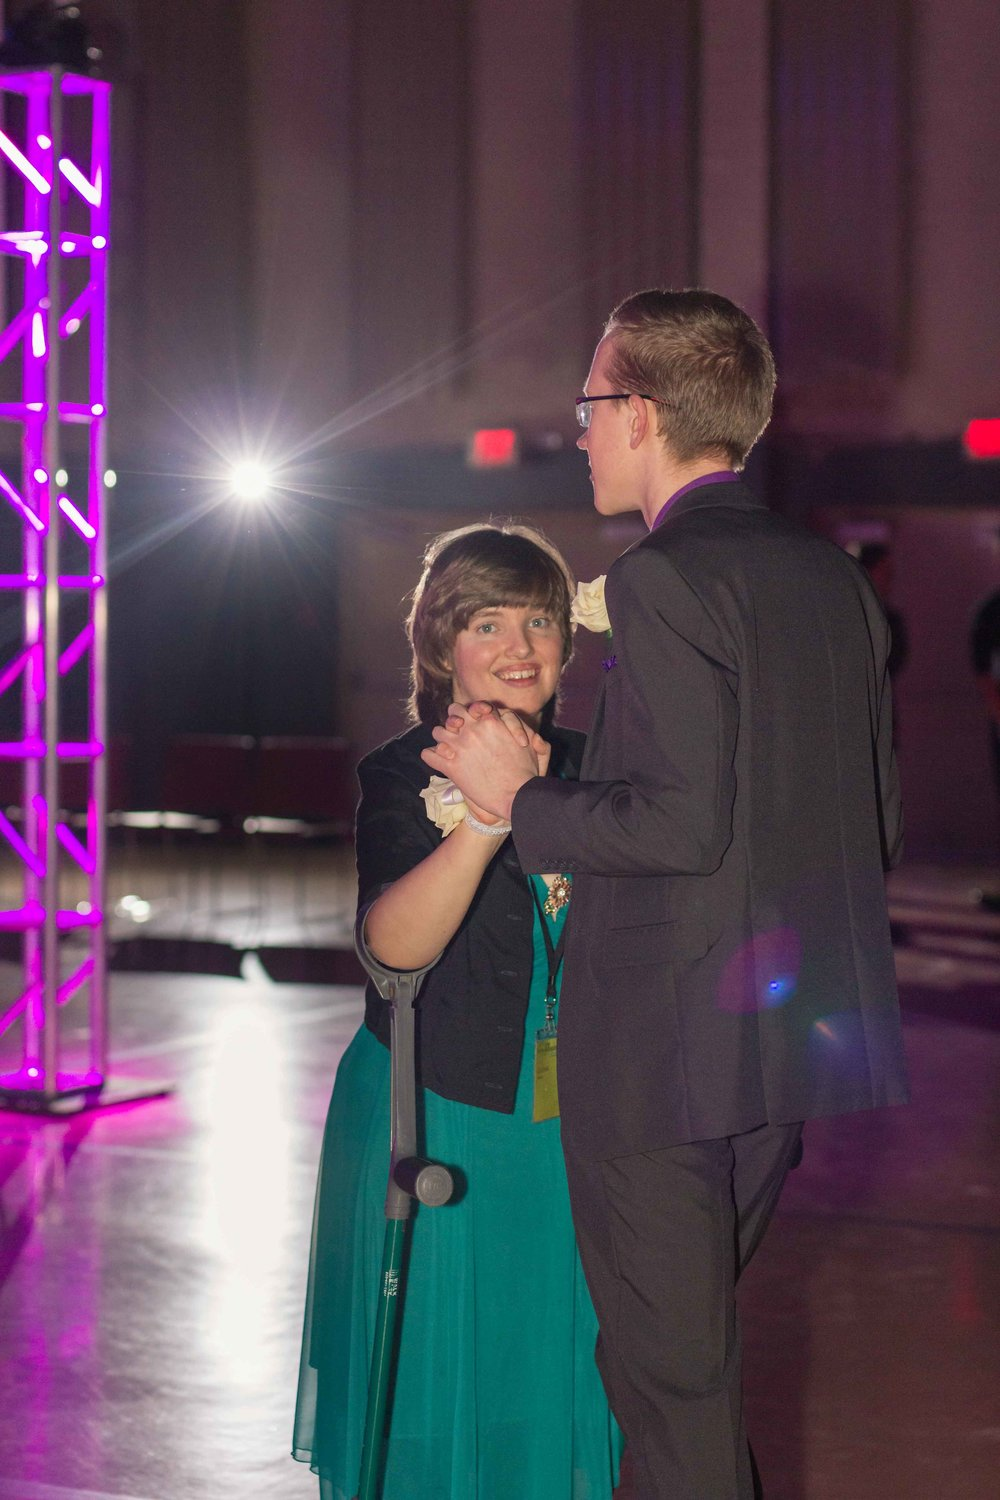 InBetweenDreamsWedding_NightToShine2018_HorizonChurch (165 of 514).jpg